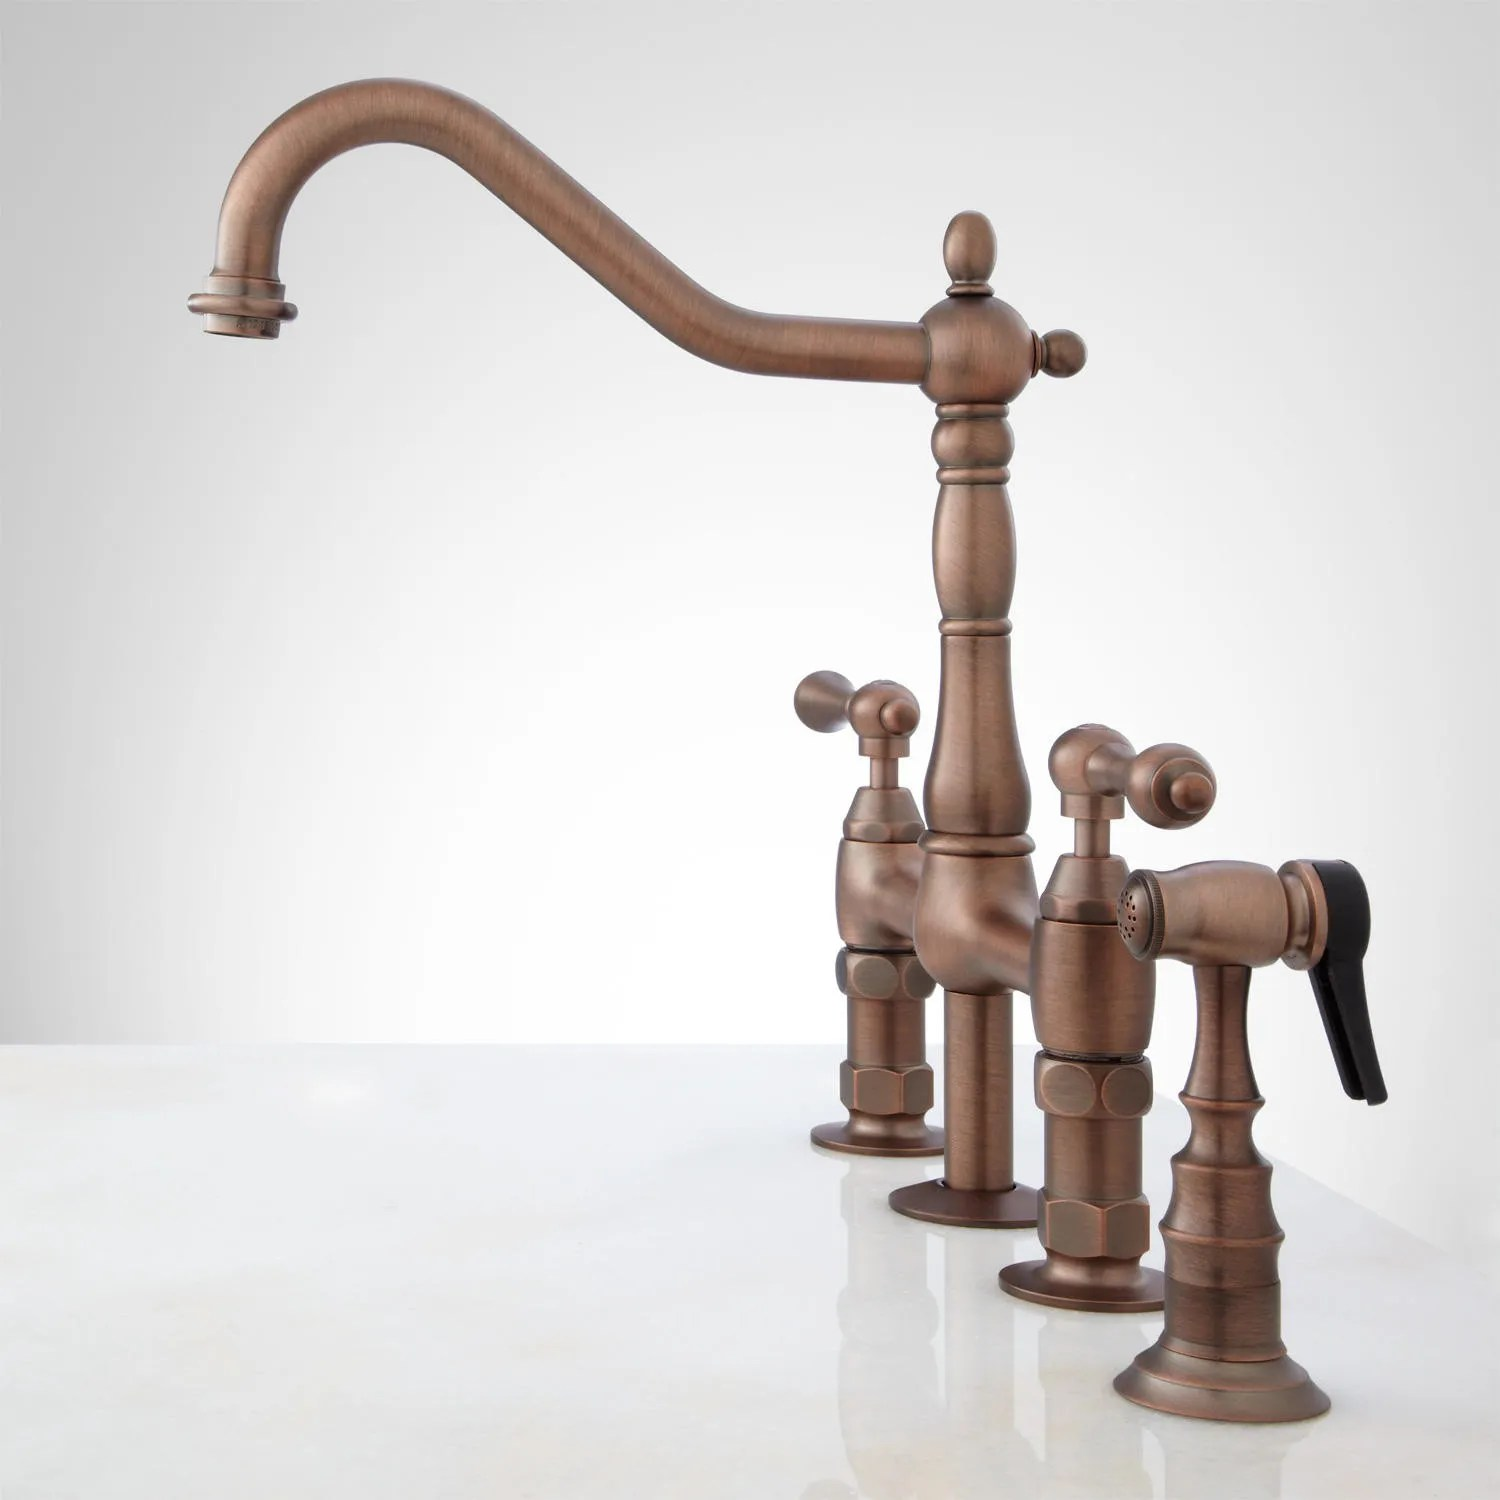 bellevue bridge kitchen faucet with brass sprayer lever handles kitchen faucet bronze Oil Rubbed Bronze Side